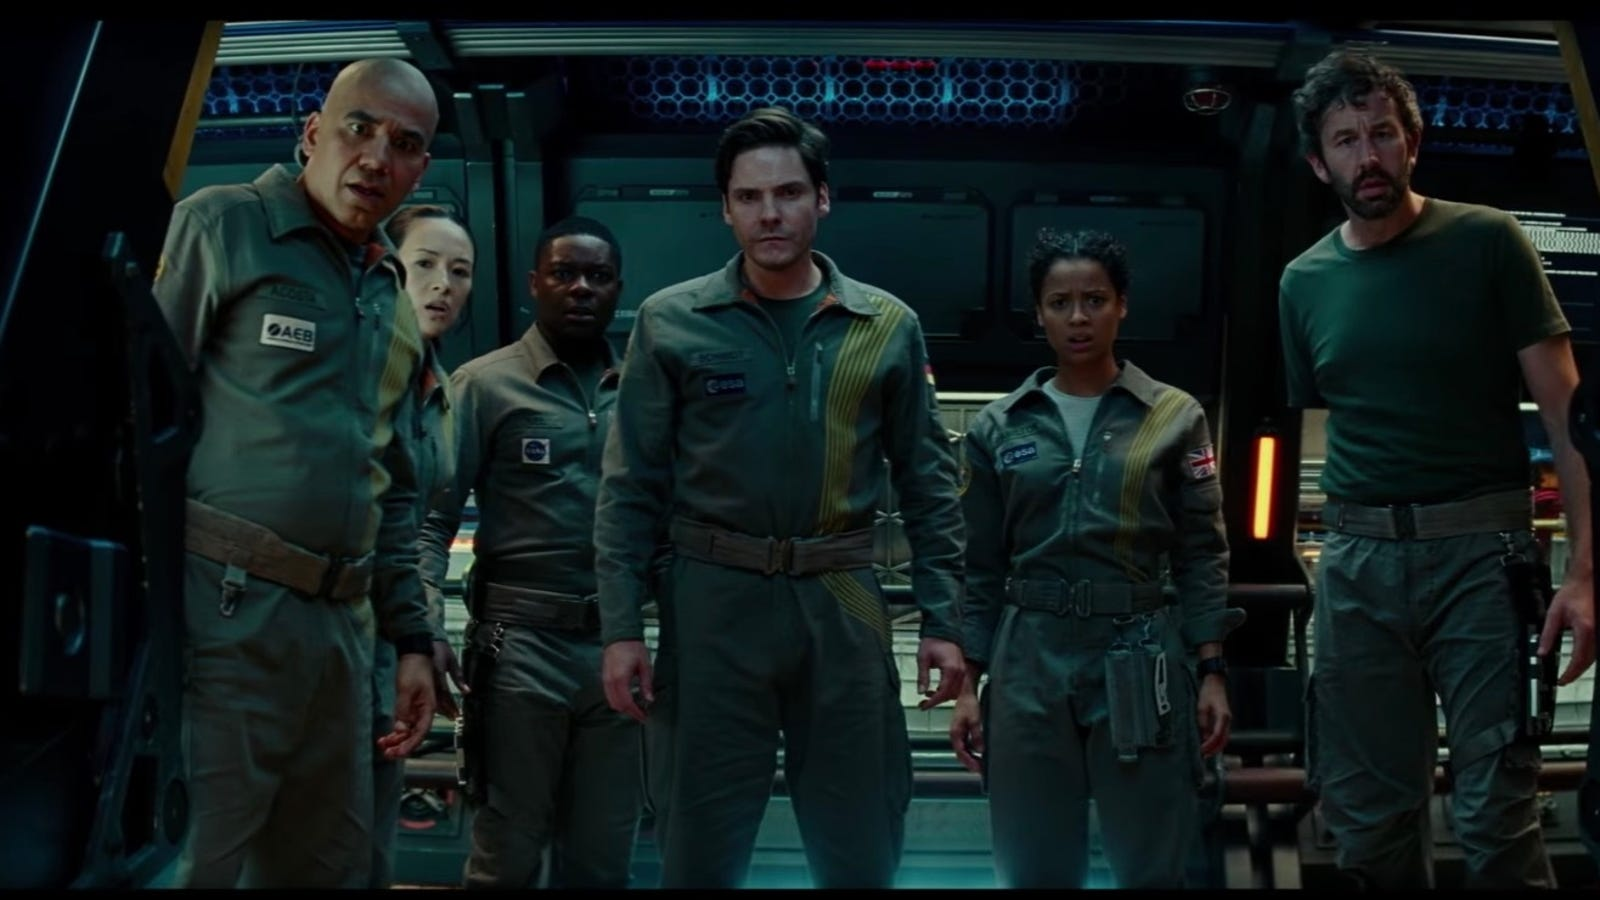 Here's the First Footage From The Cloverfield Paradox, Which Is Already On Netflix [UPDATED]